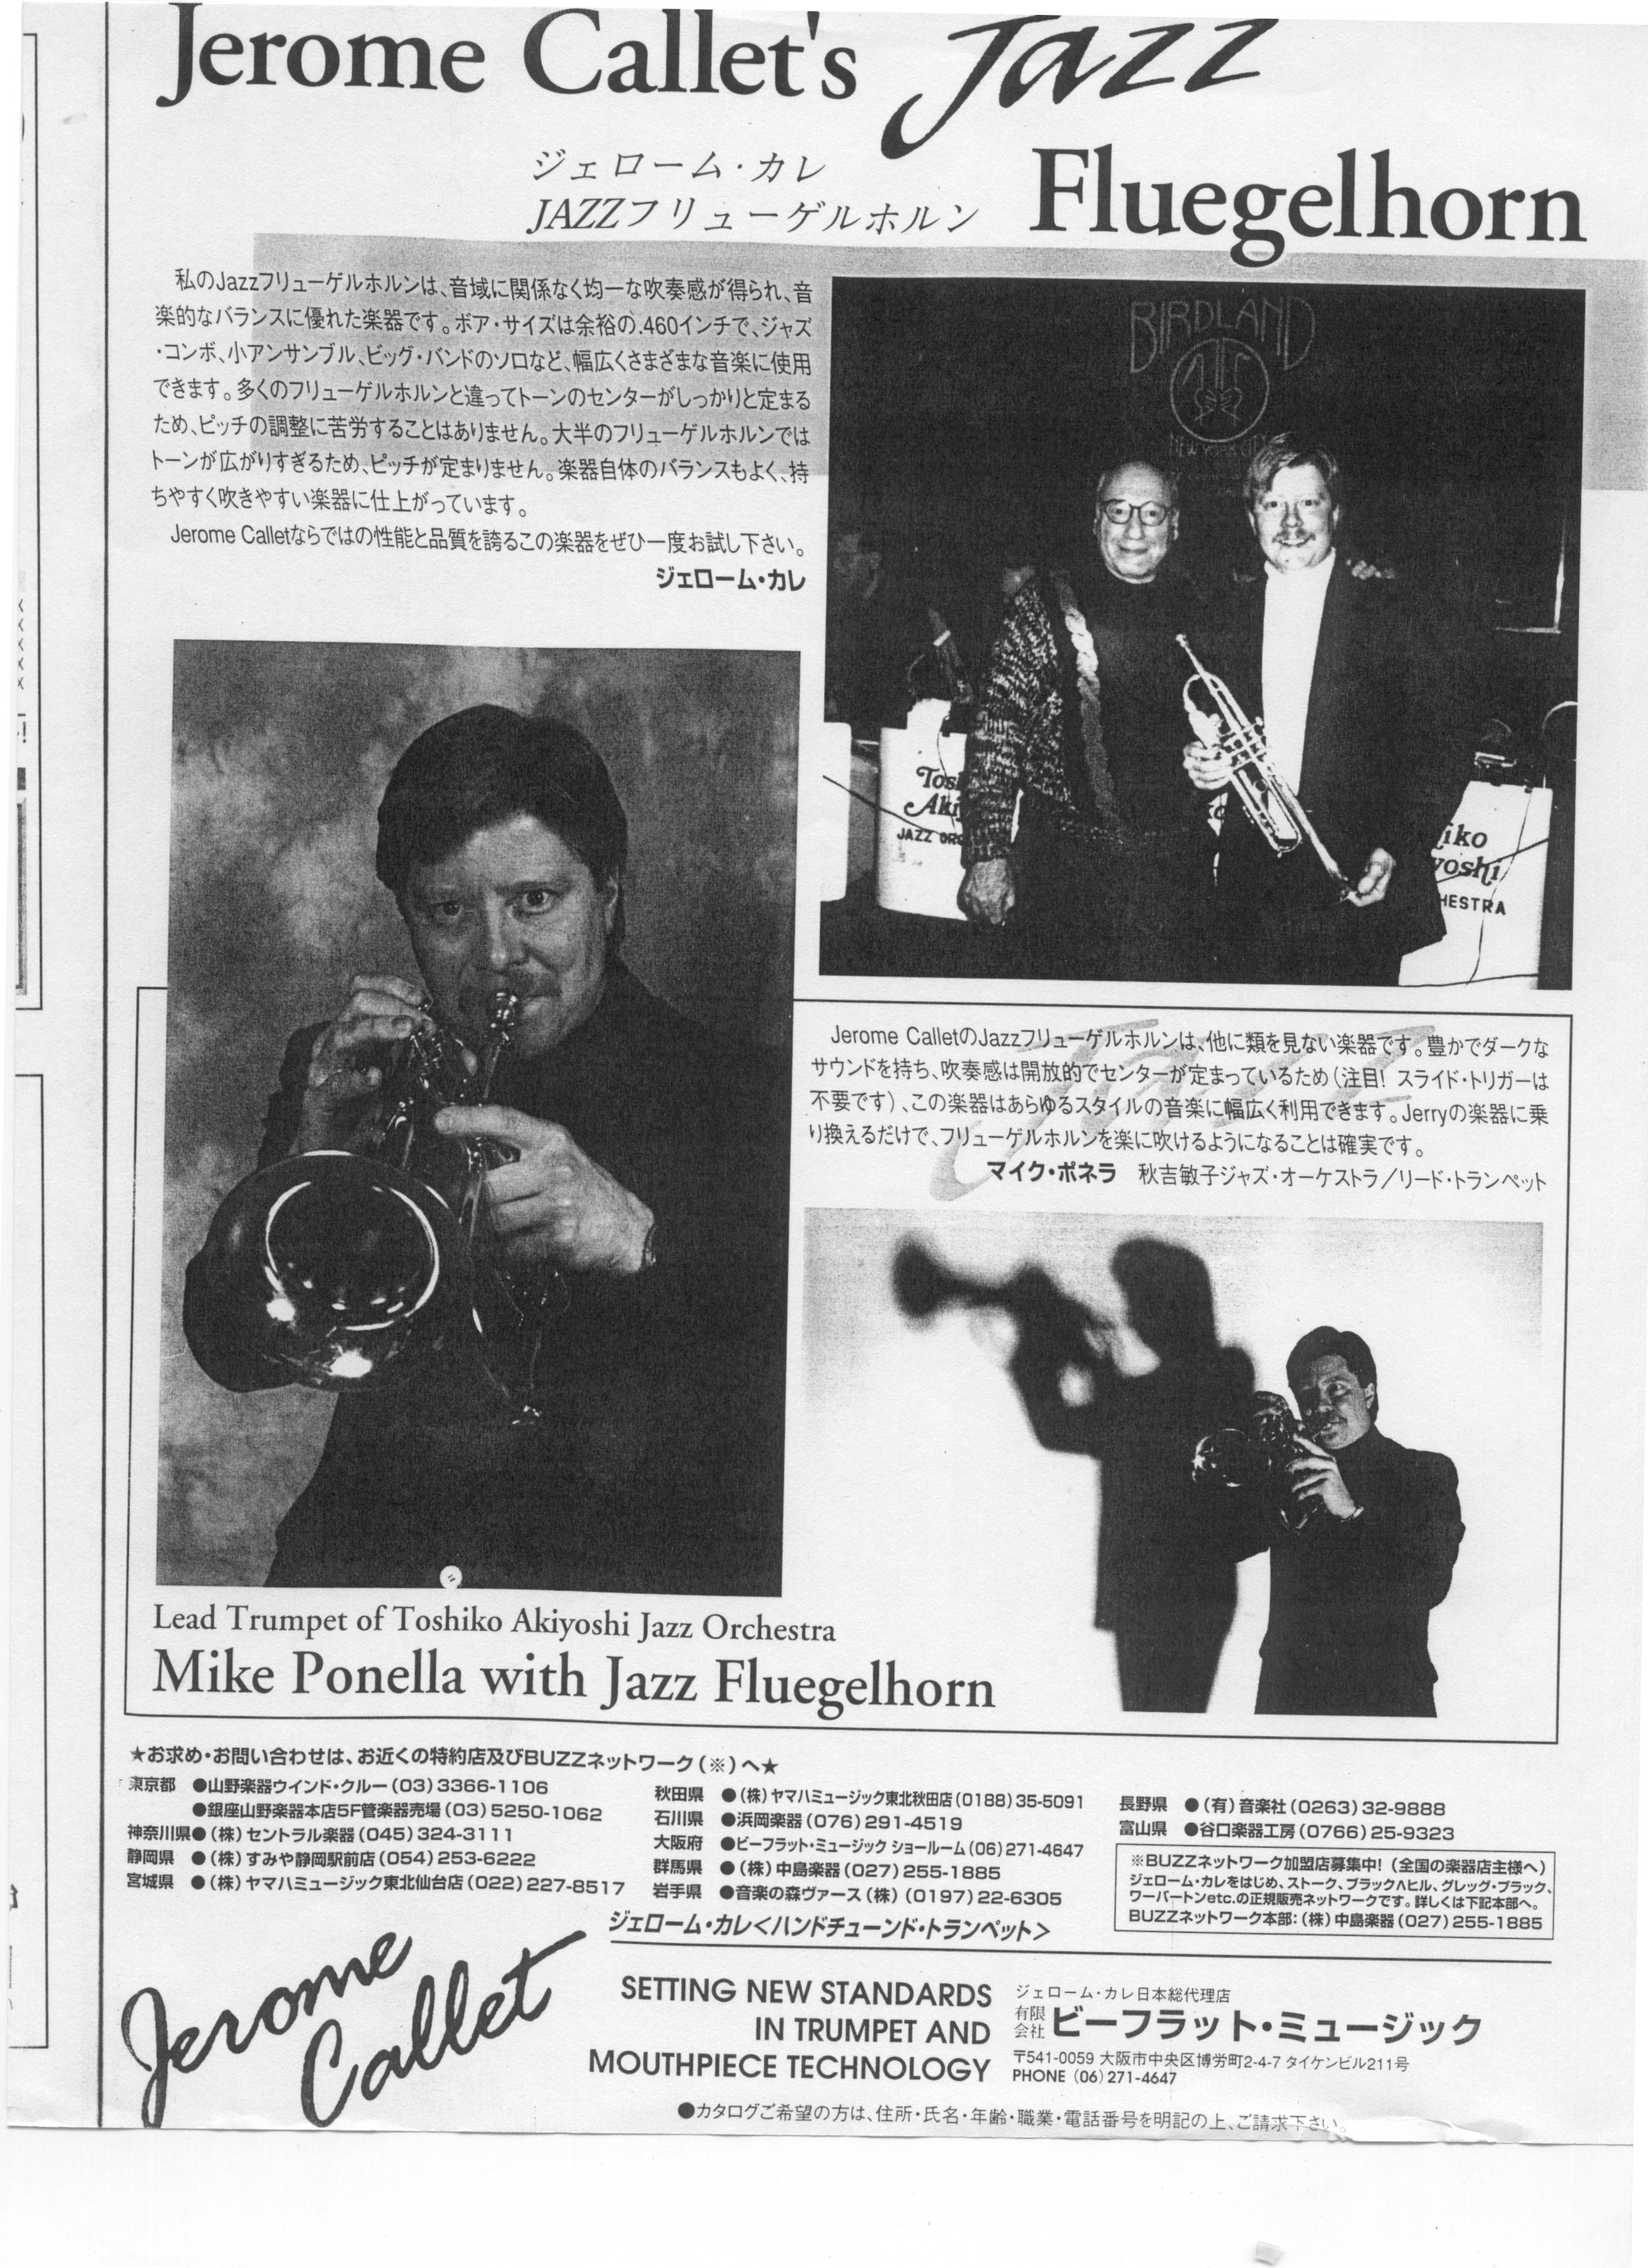 Mike Ponella Trumpet Player - Jerome Callet Advertisement